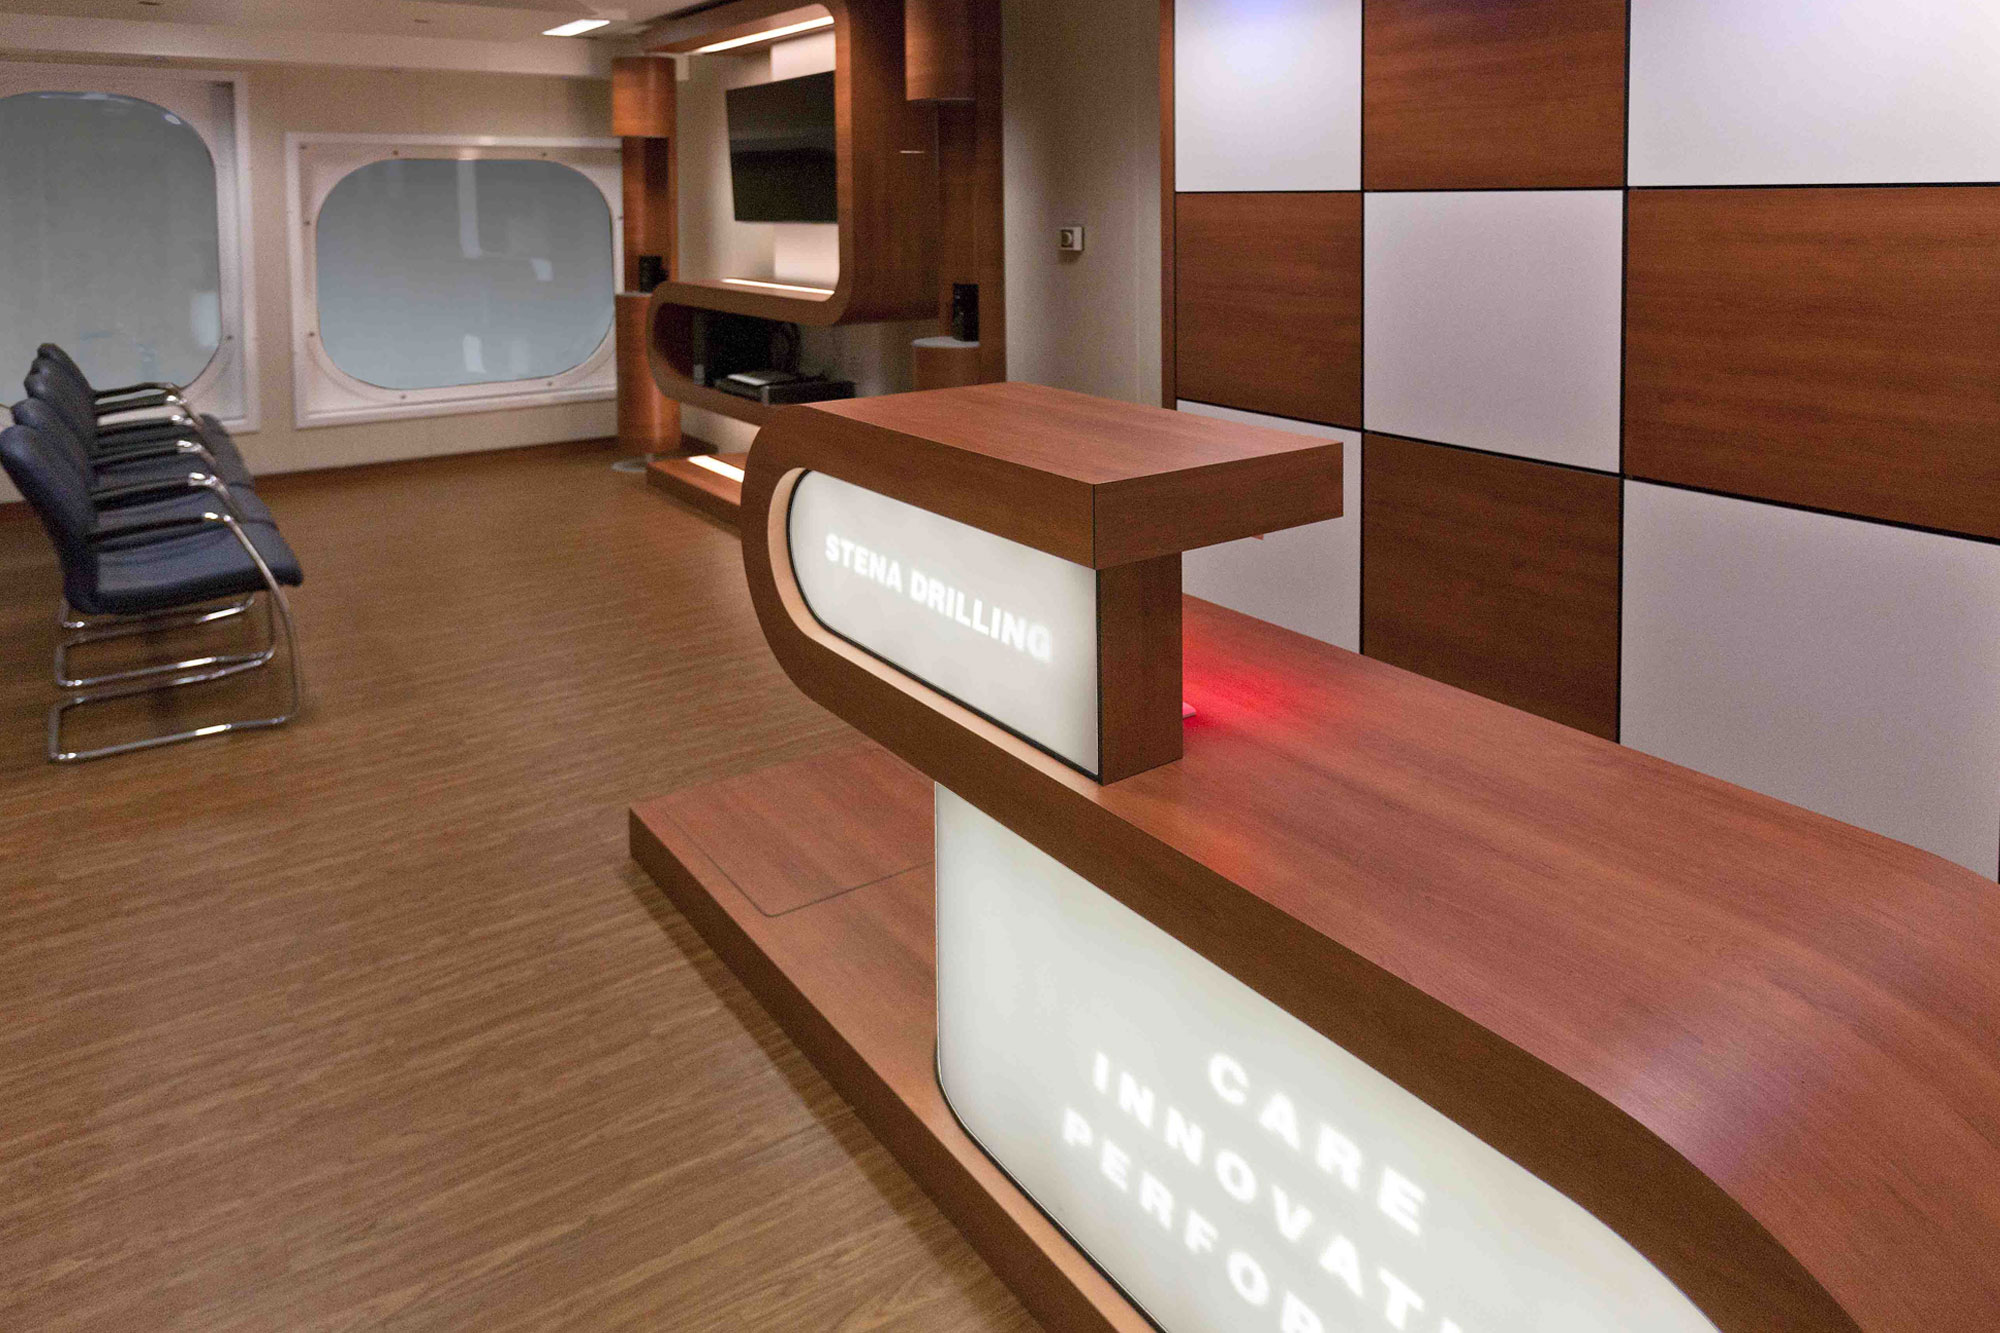 Office Areas, Receptions, Control Rooms & Heli Admin Lounges